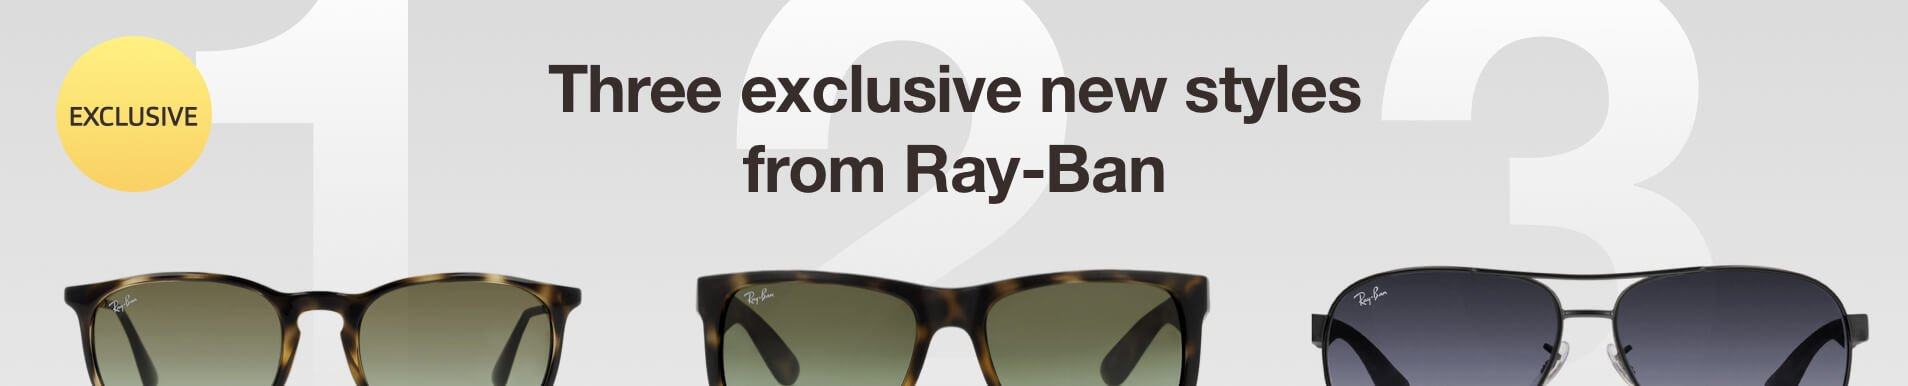 Exclusive Vision Express Ray-Ban sunglasses